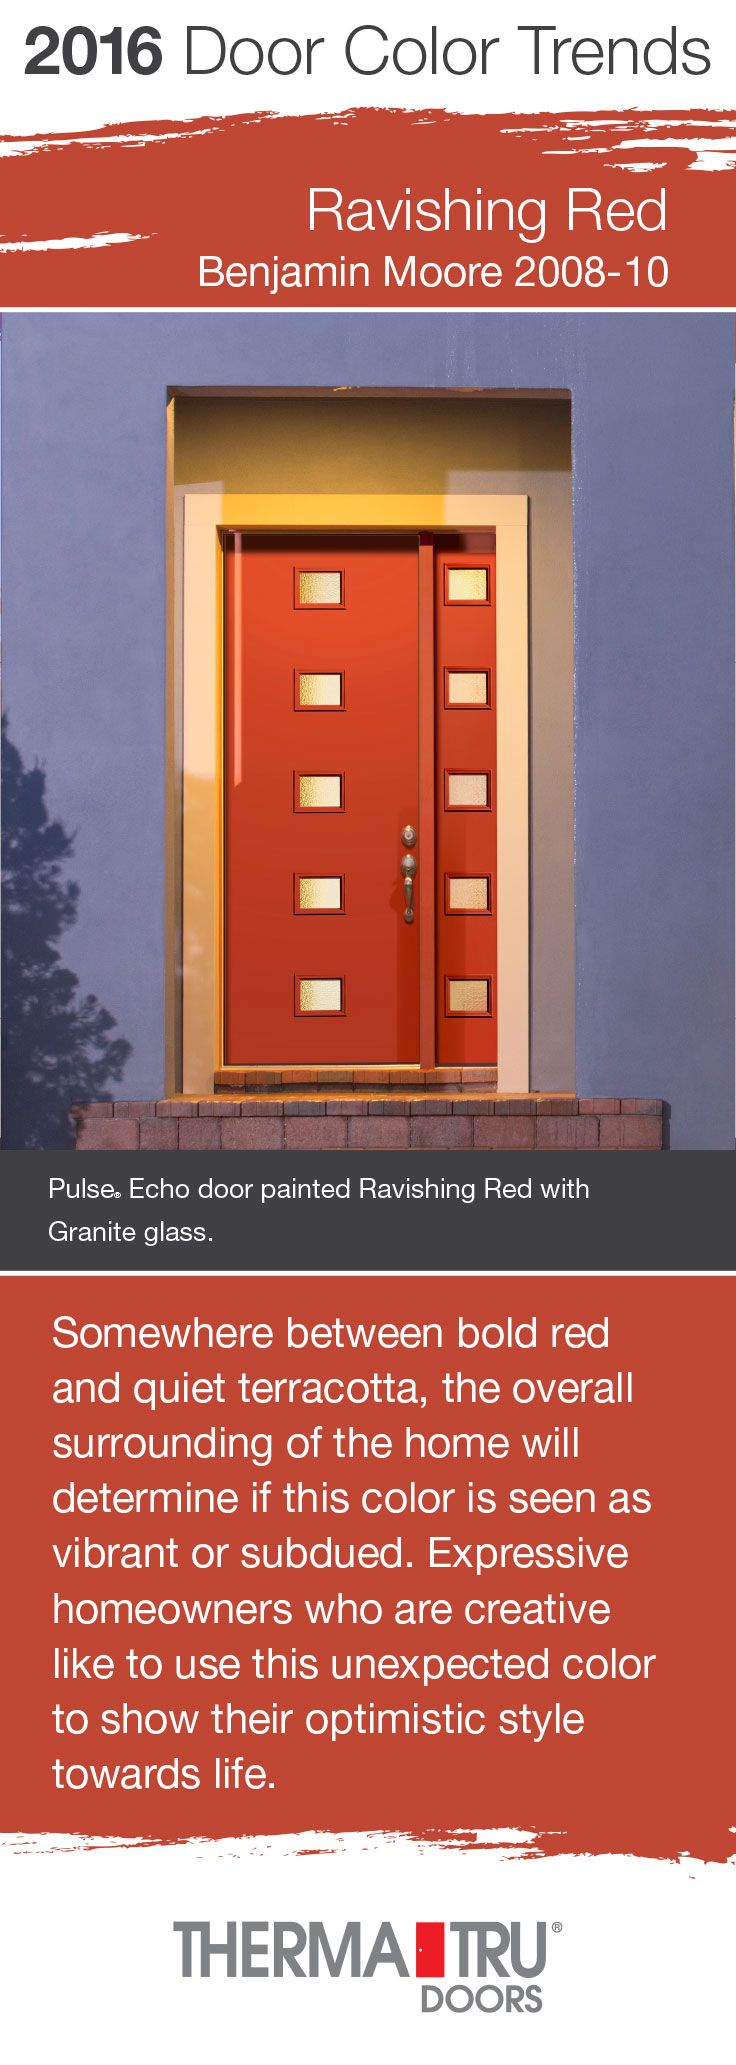 ravishing home show giveaway ideas. Ravishing Red by Benjamin Moore  one of the front door color trends for 2016 51 best Exterior Ideas images on Pinterest Front doors Windows